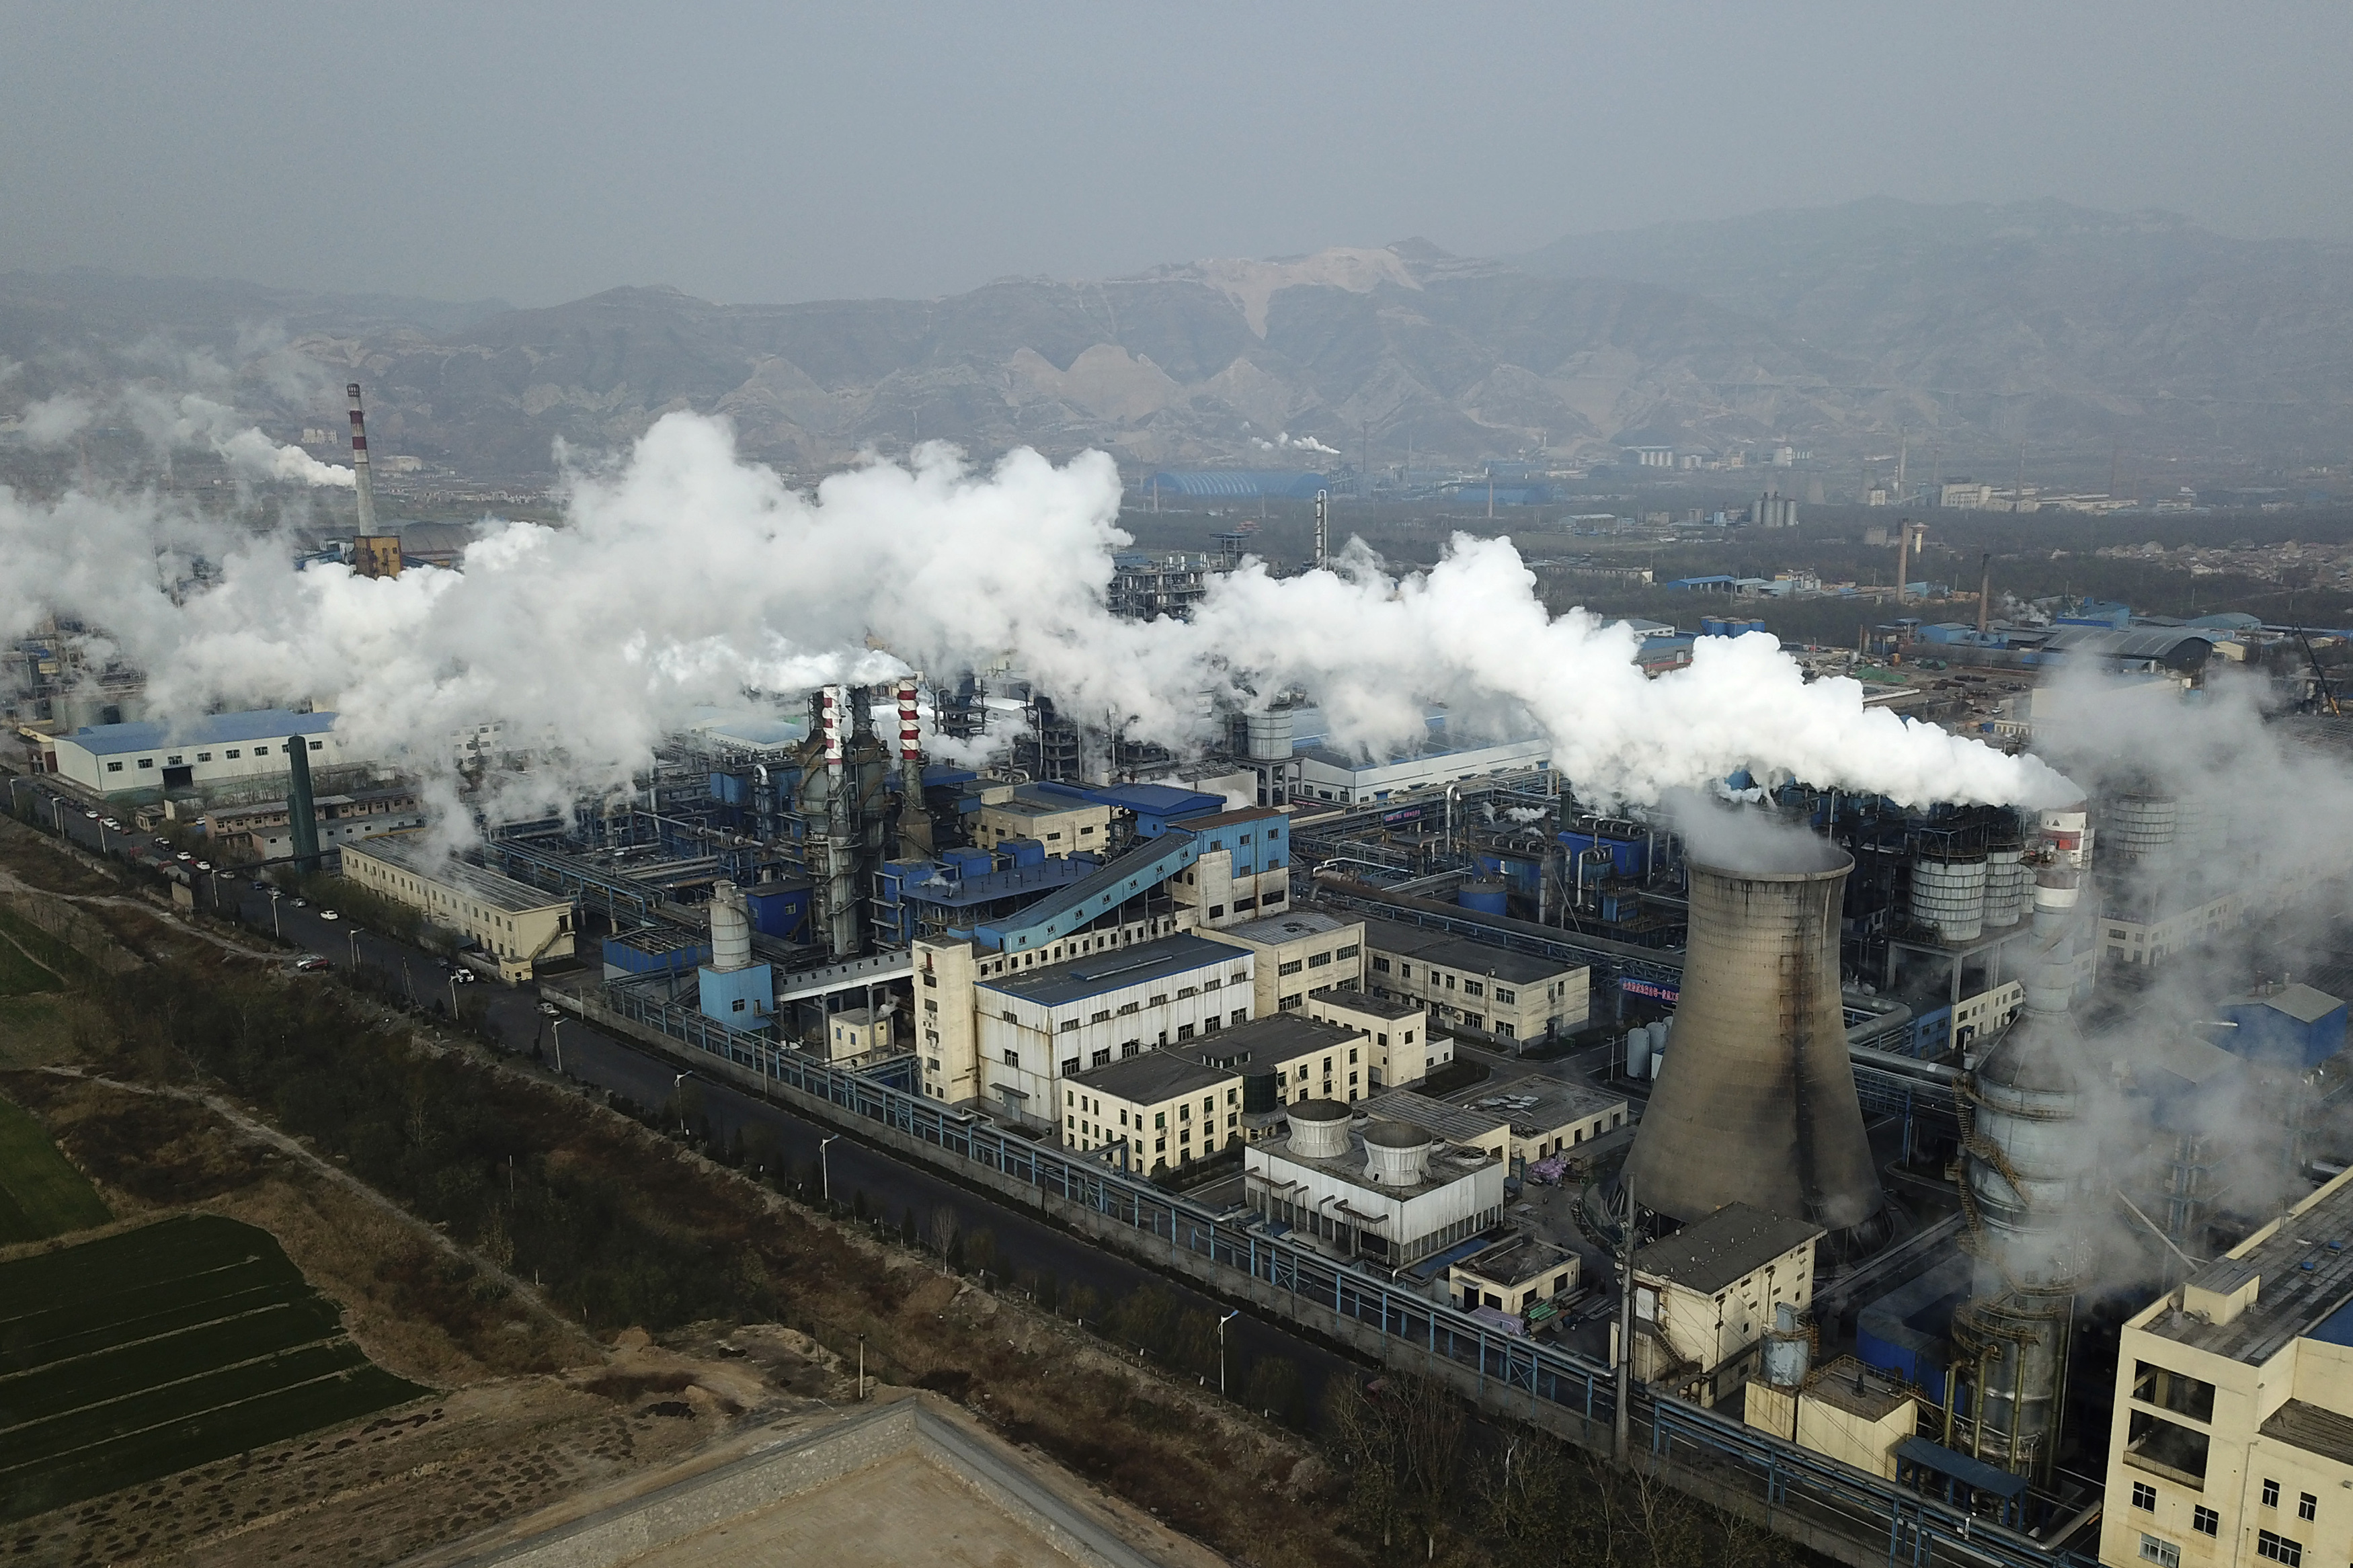 Global Carbon Emissions Slow But Still Reach New Record in 2019, Study Shows